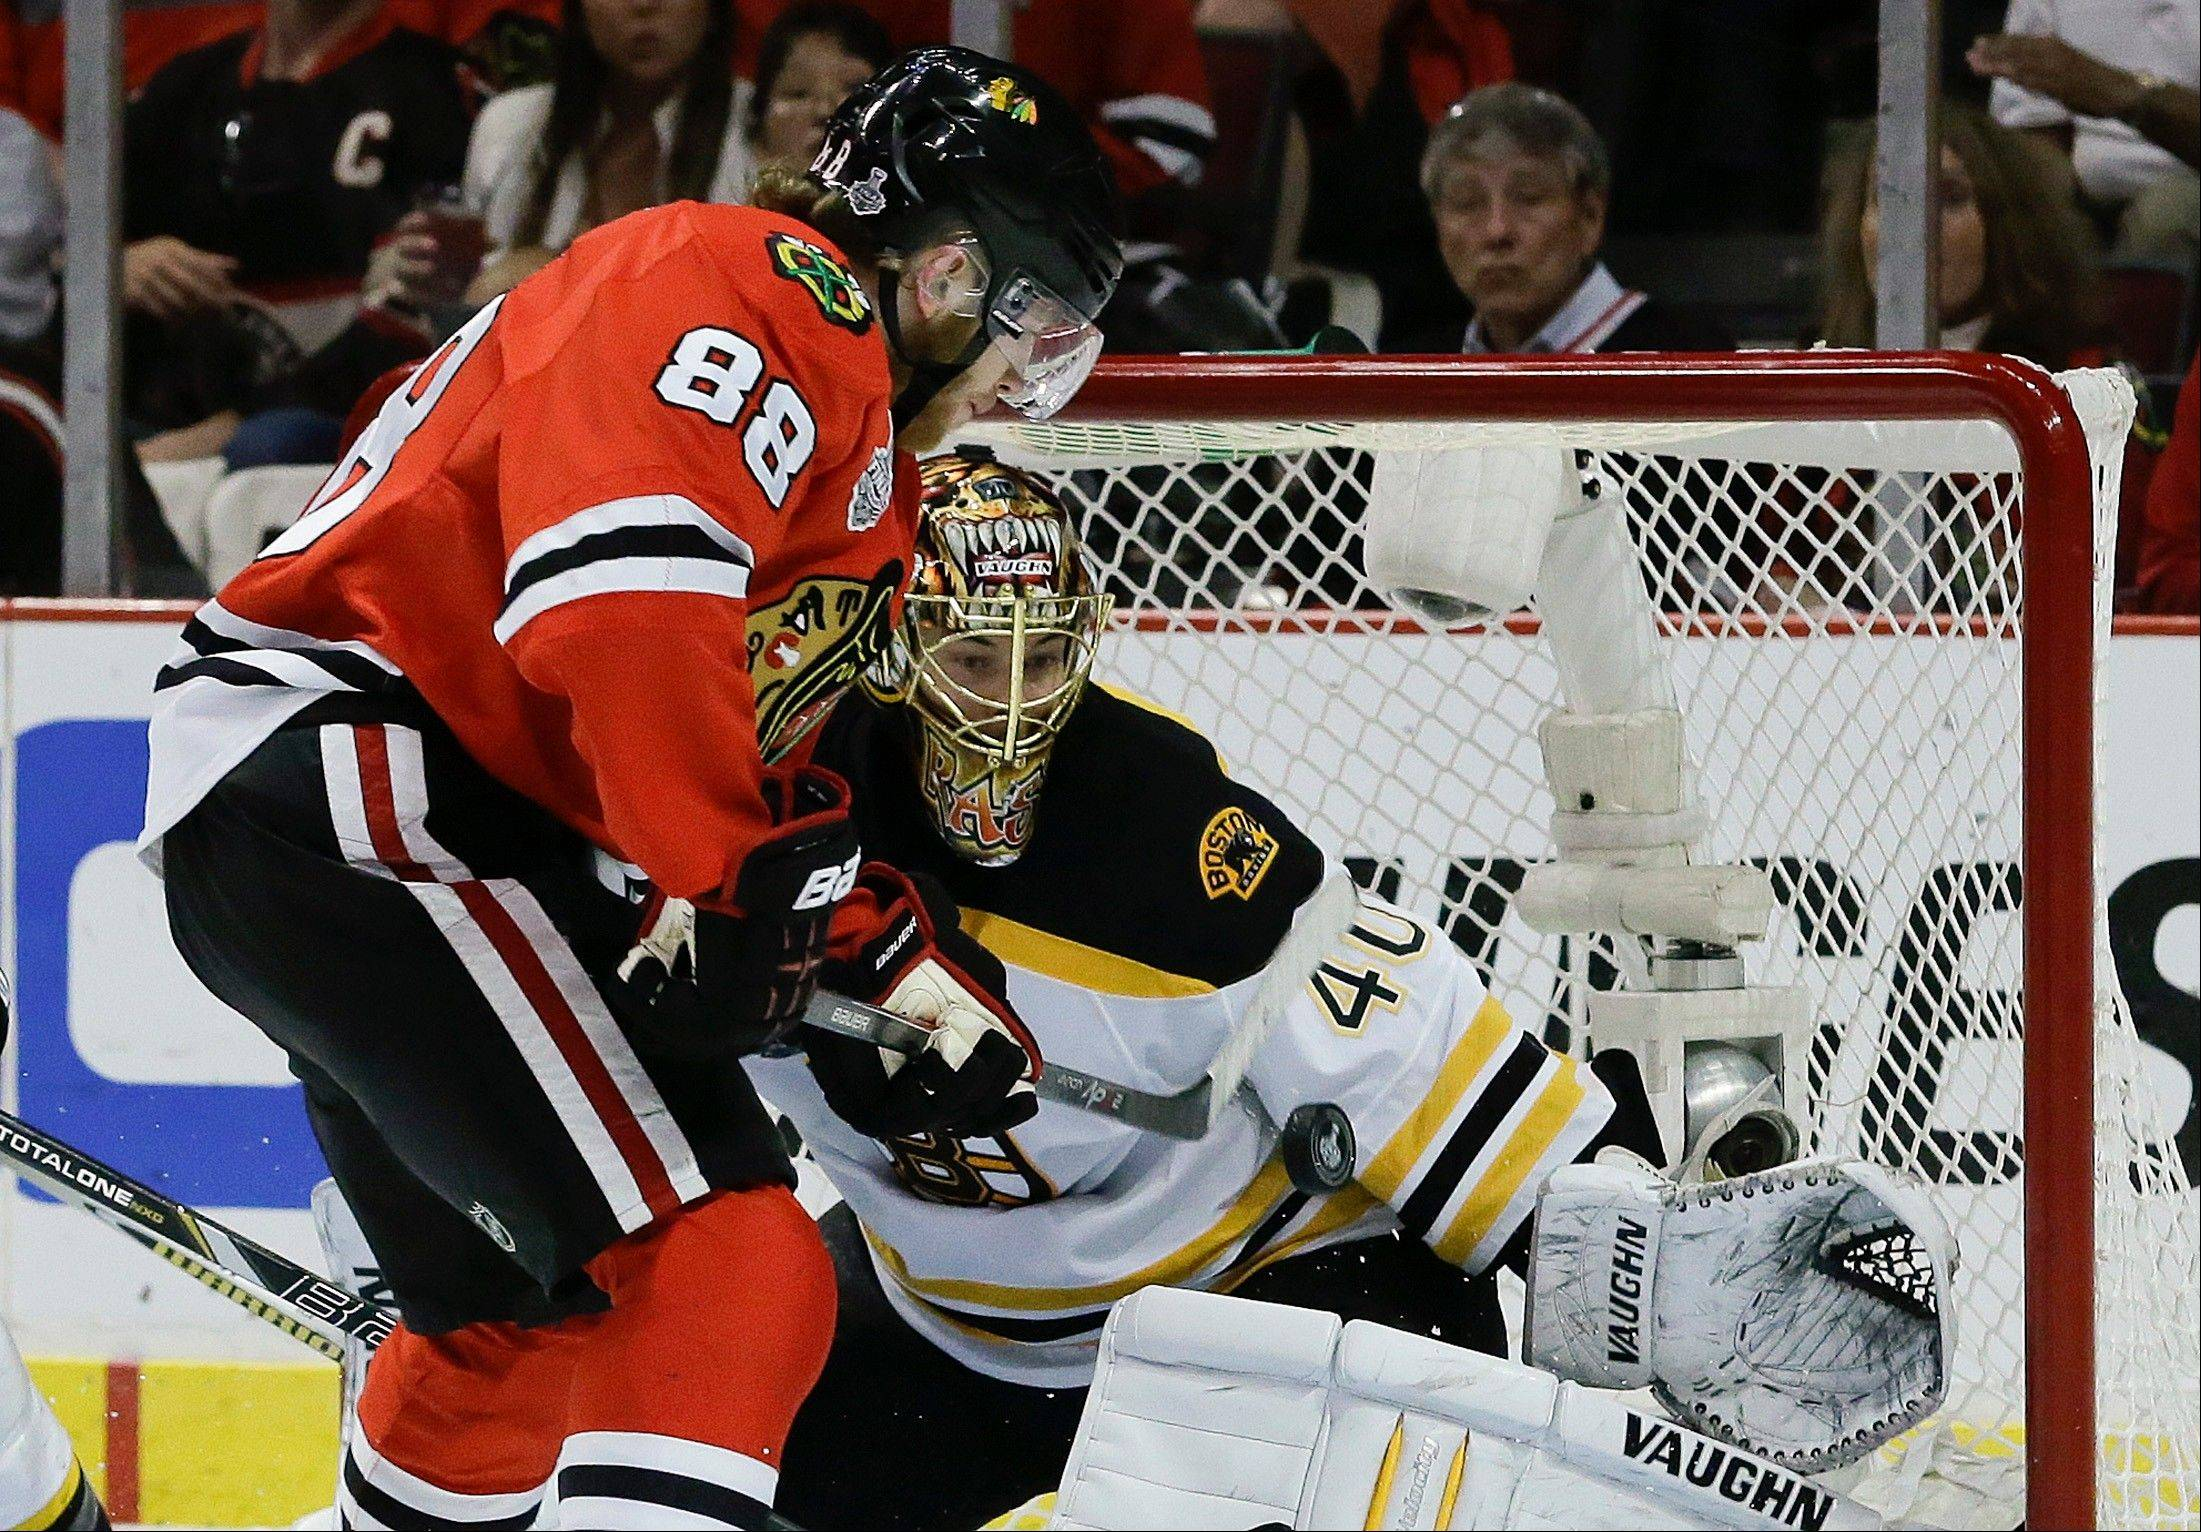 Chicago Blackhawks right wing Patrick Kane (88) scores against Boston Bruins goalie Tuukka Rask (40) in the second period during Game 5 of the NHL hockey Stanley Cup Finals, Saturday, June 22, 2013, in Chicago.